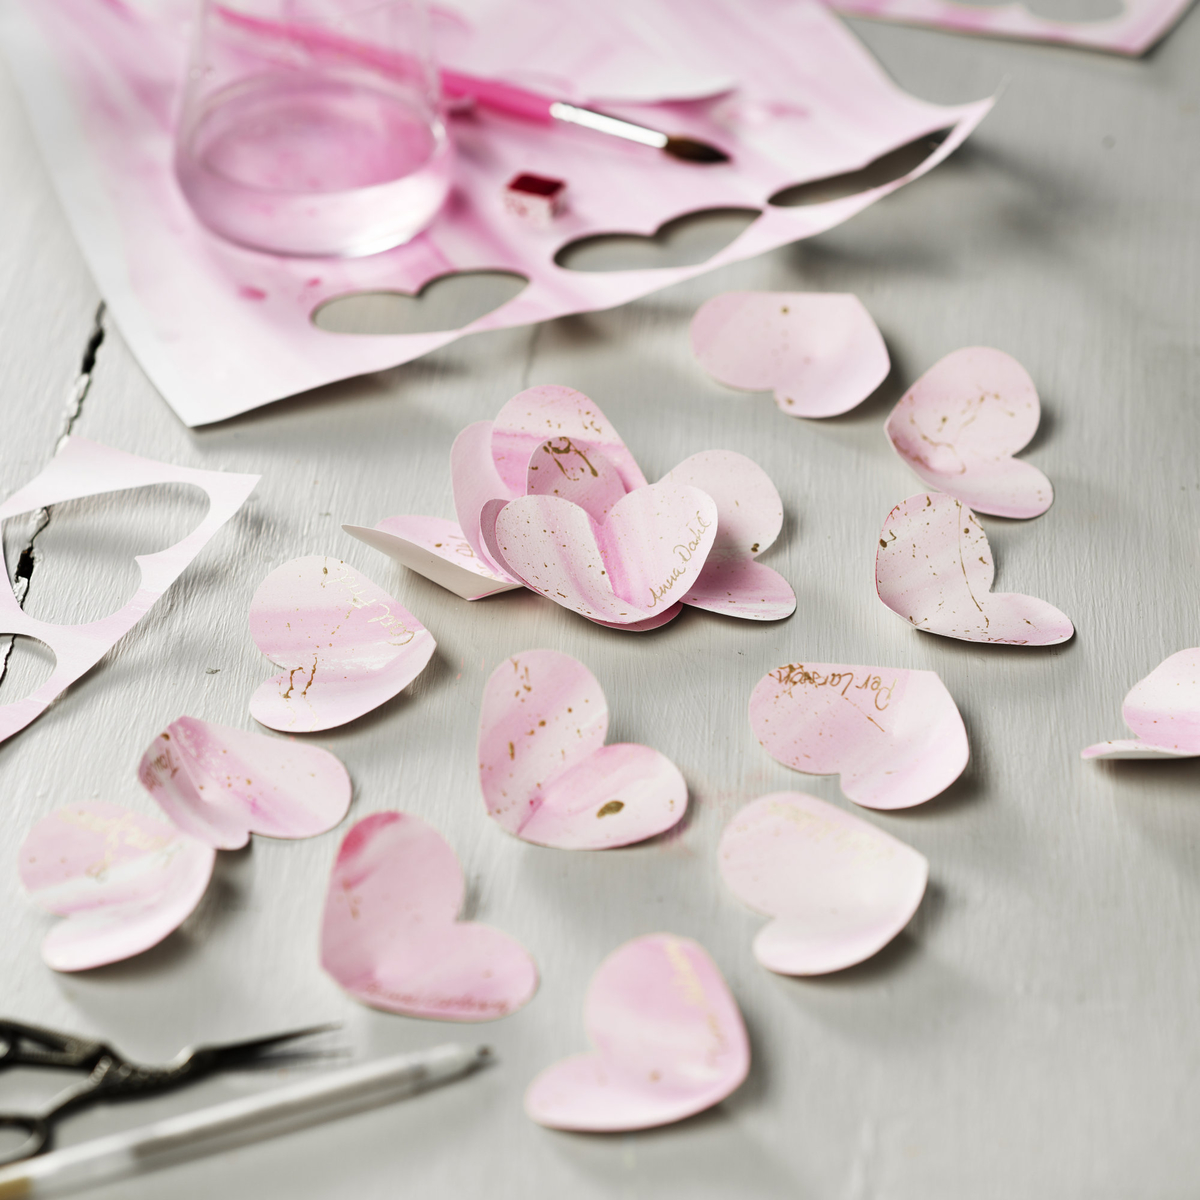 Paint heart-shaped place cards